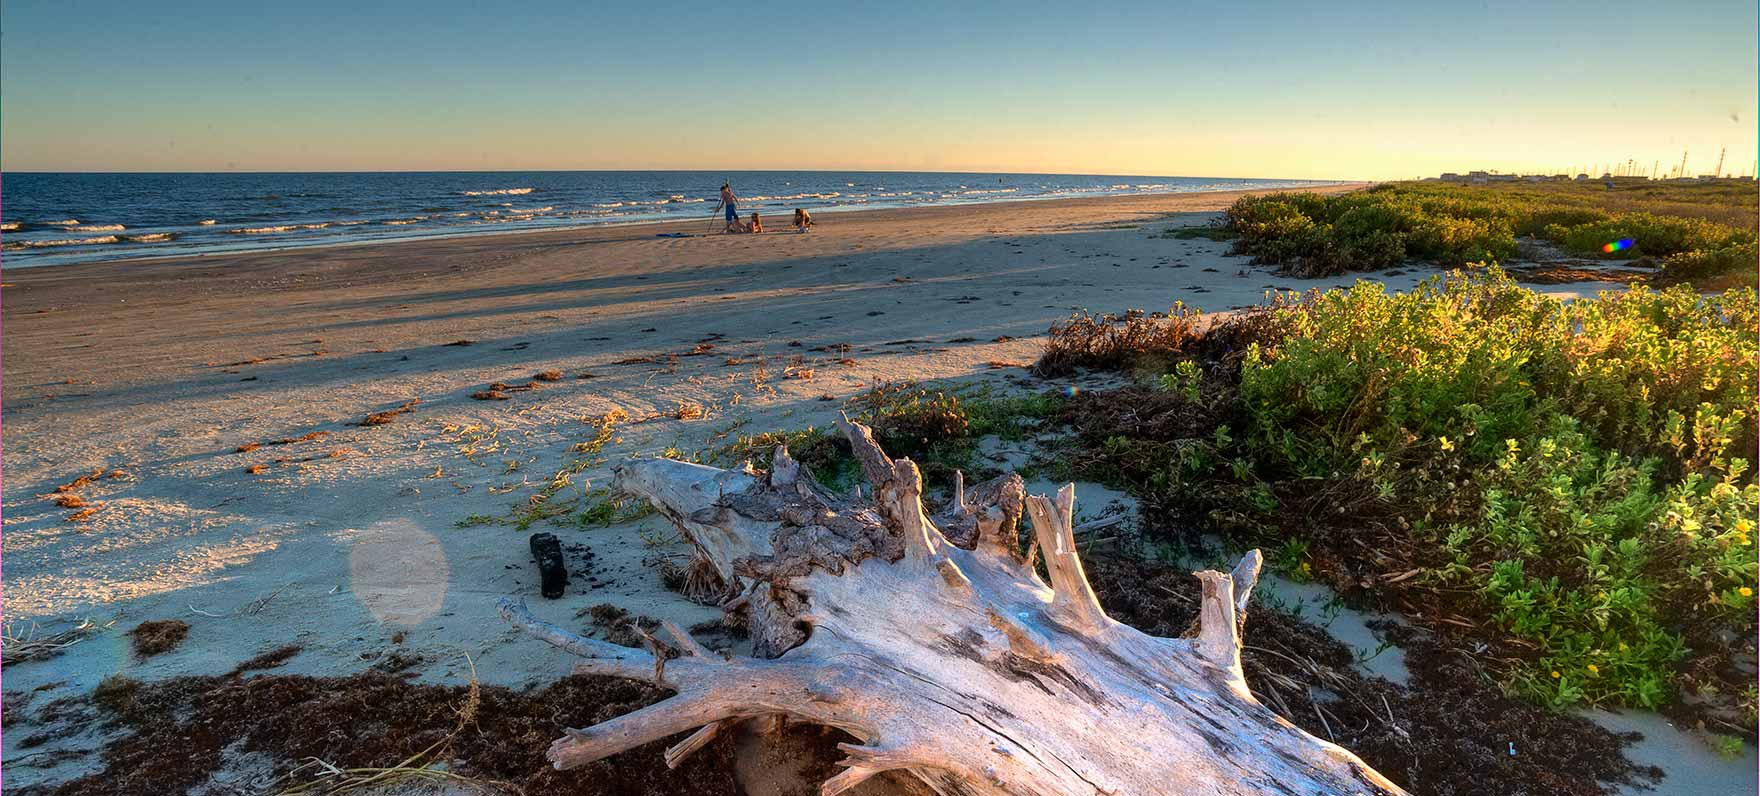 At the west end of this popular island just an hour from Houston, this quiet treasure protects 2,000 acres of upper Gulf Coast barrier island ecosystem, including beautiful beaches, lagoons, bay, and salt marshes. Note: the beach-side area of the park is